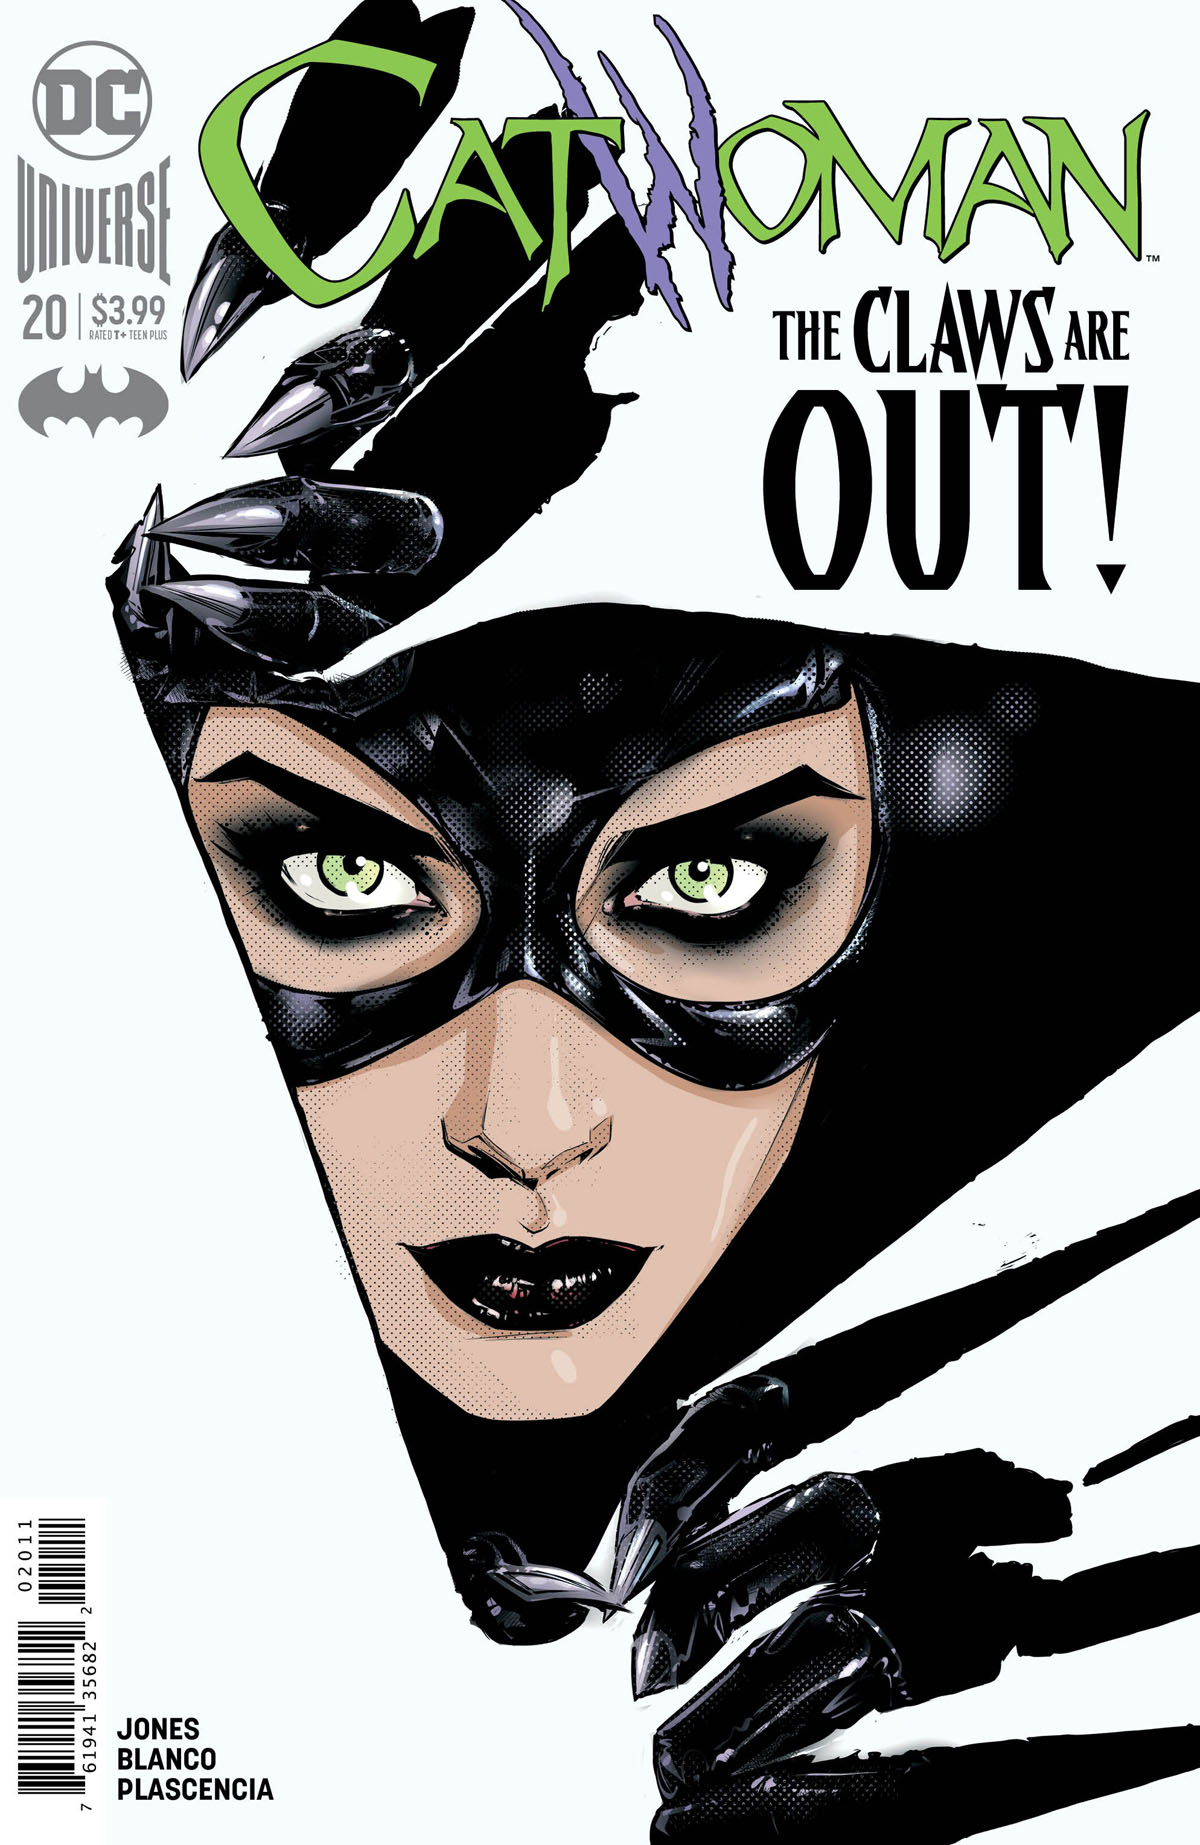 Catwoman #20 cover